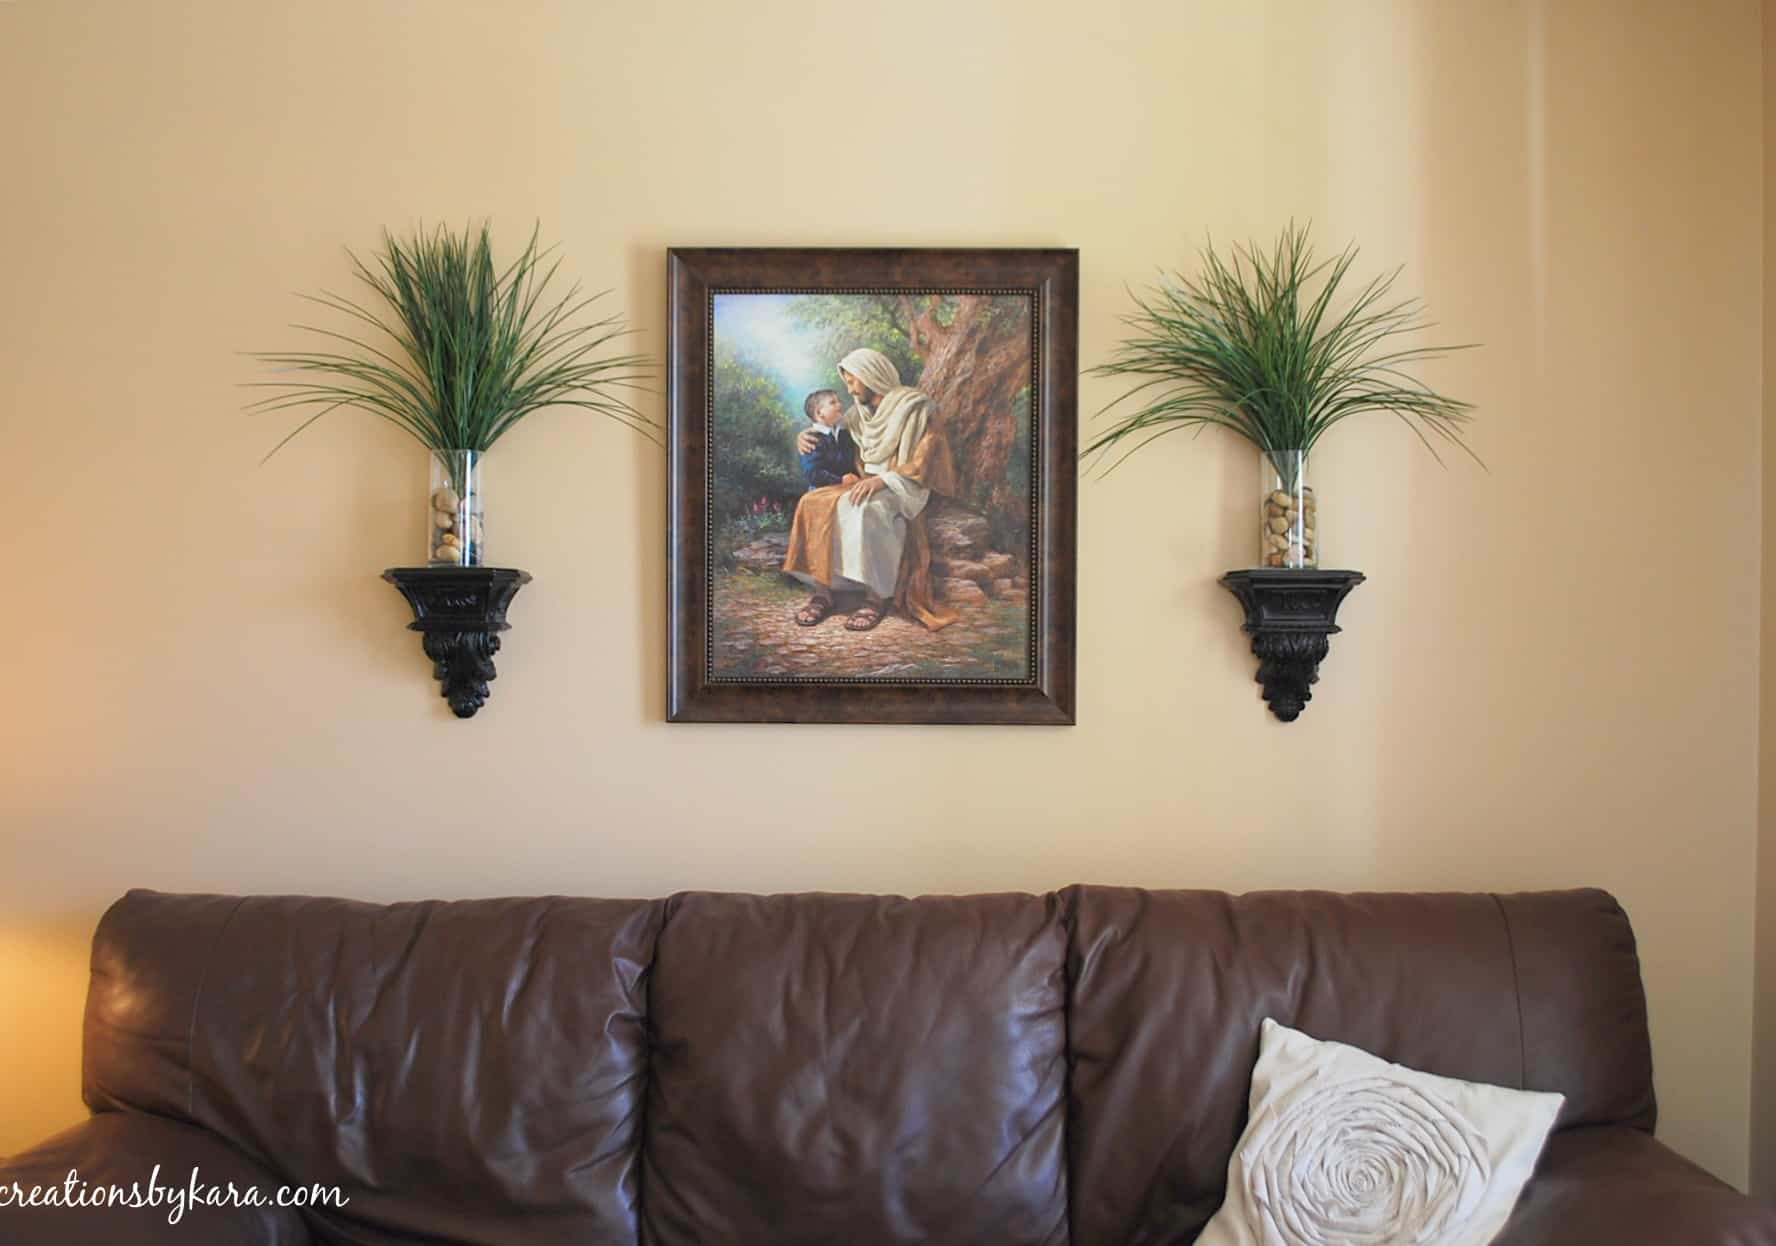 Living Room Re-Decorating: Wall Decor — Creations by Kara